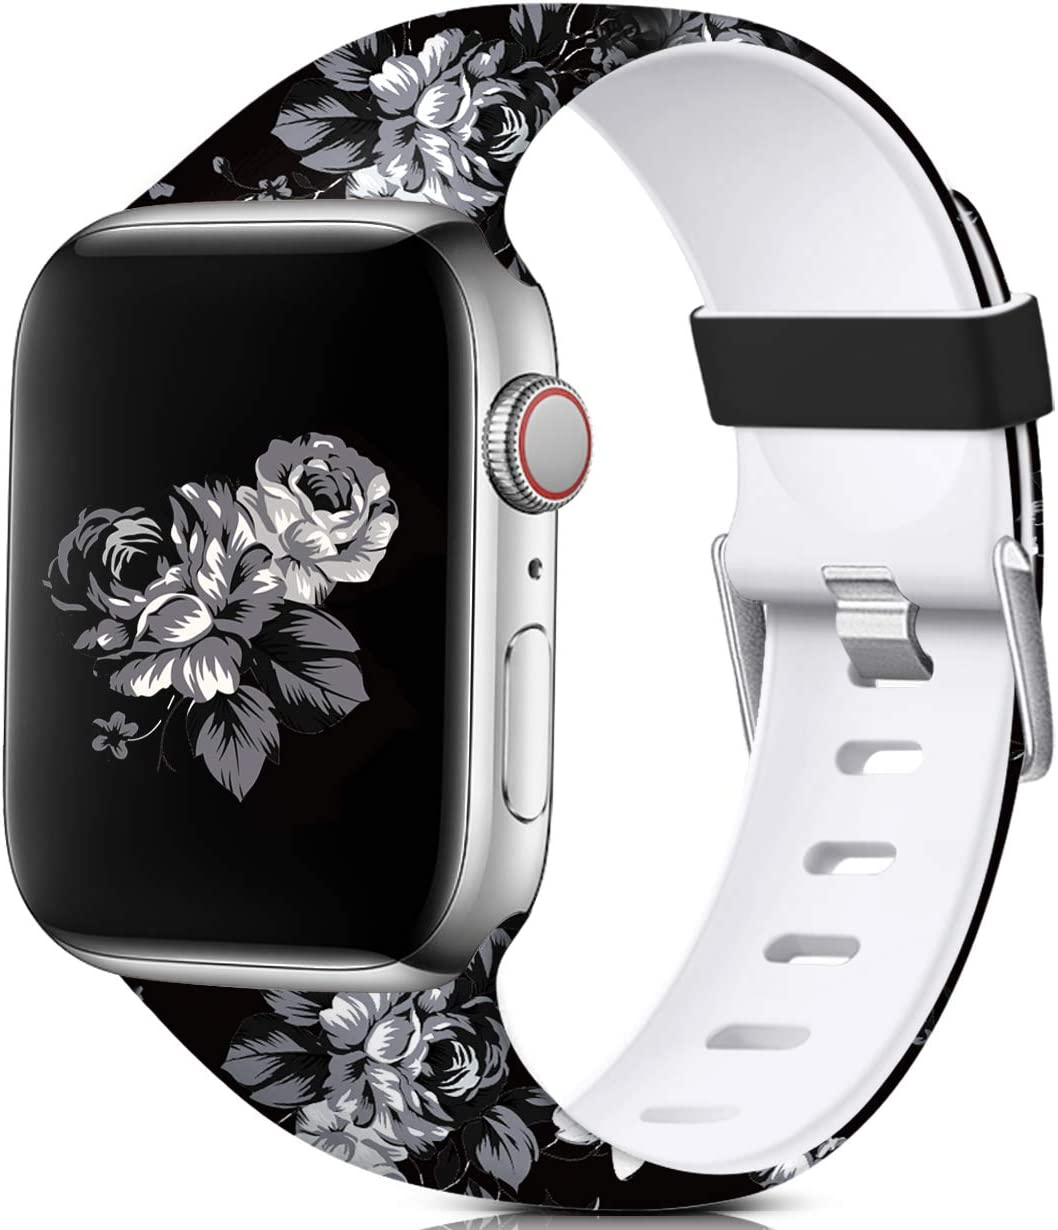 Nofeda Floral Bands Compatible with Apple Watch 40mm 38mm for Women Men, Soft Fadeless Pattern Printed Sport Band Replacement for iWatch Series 5,4,3,2,1, S/M, Gray Flower